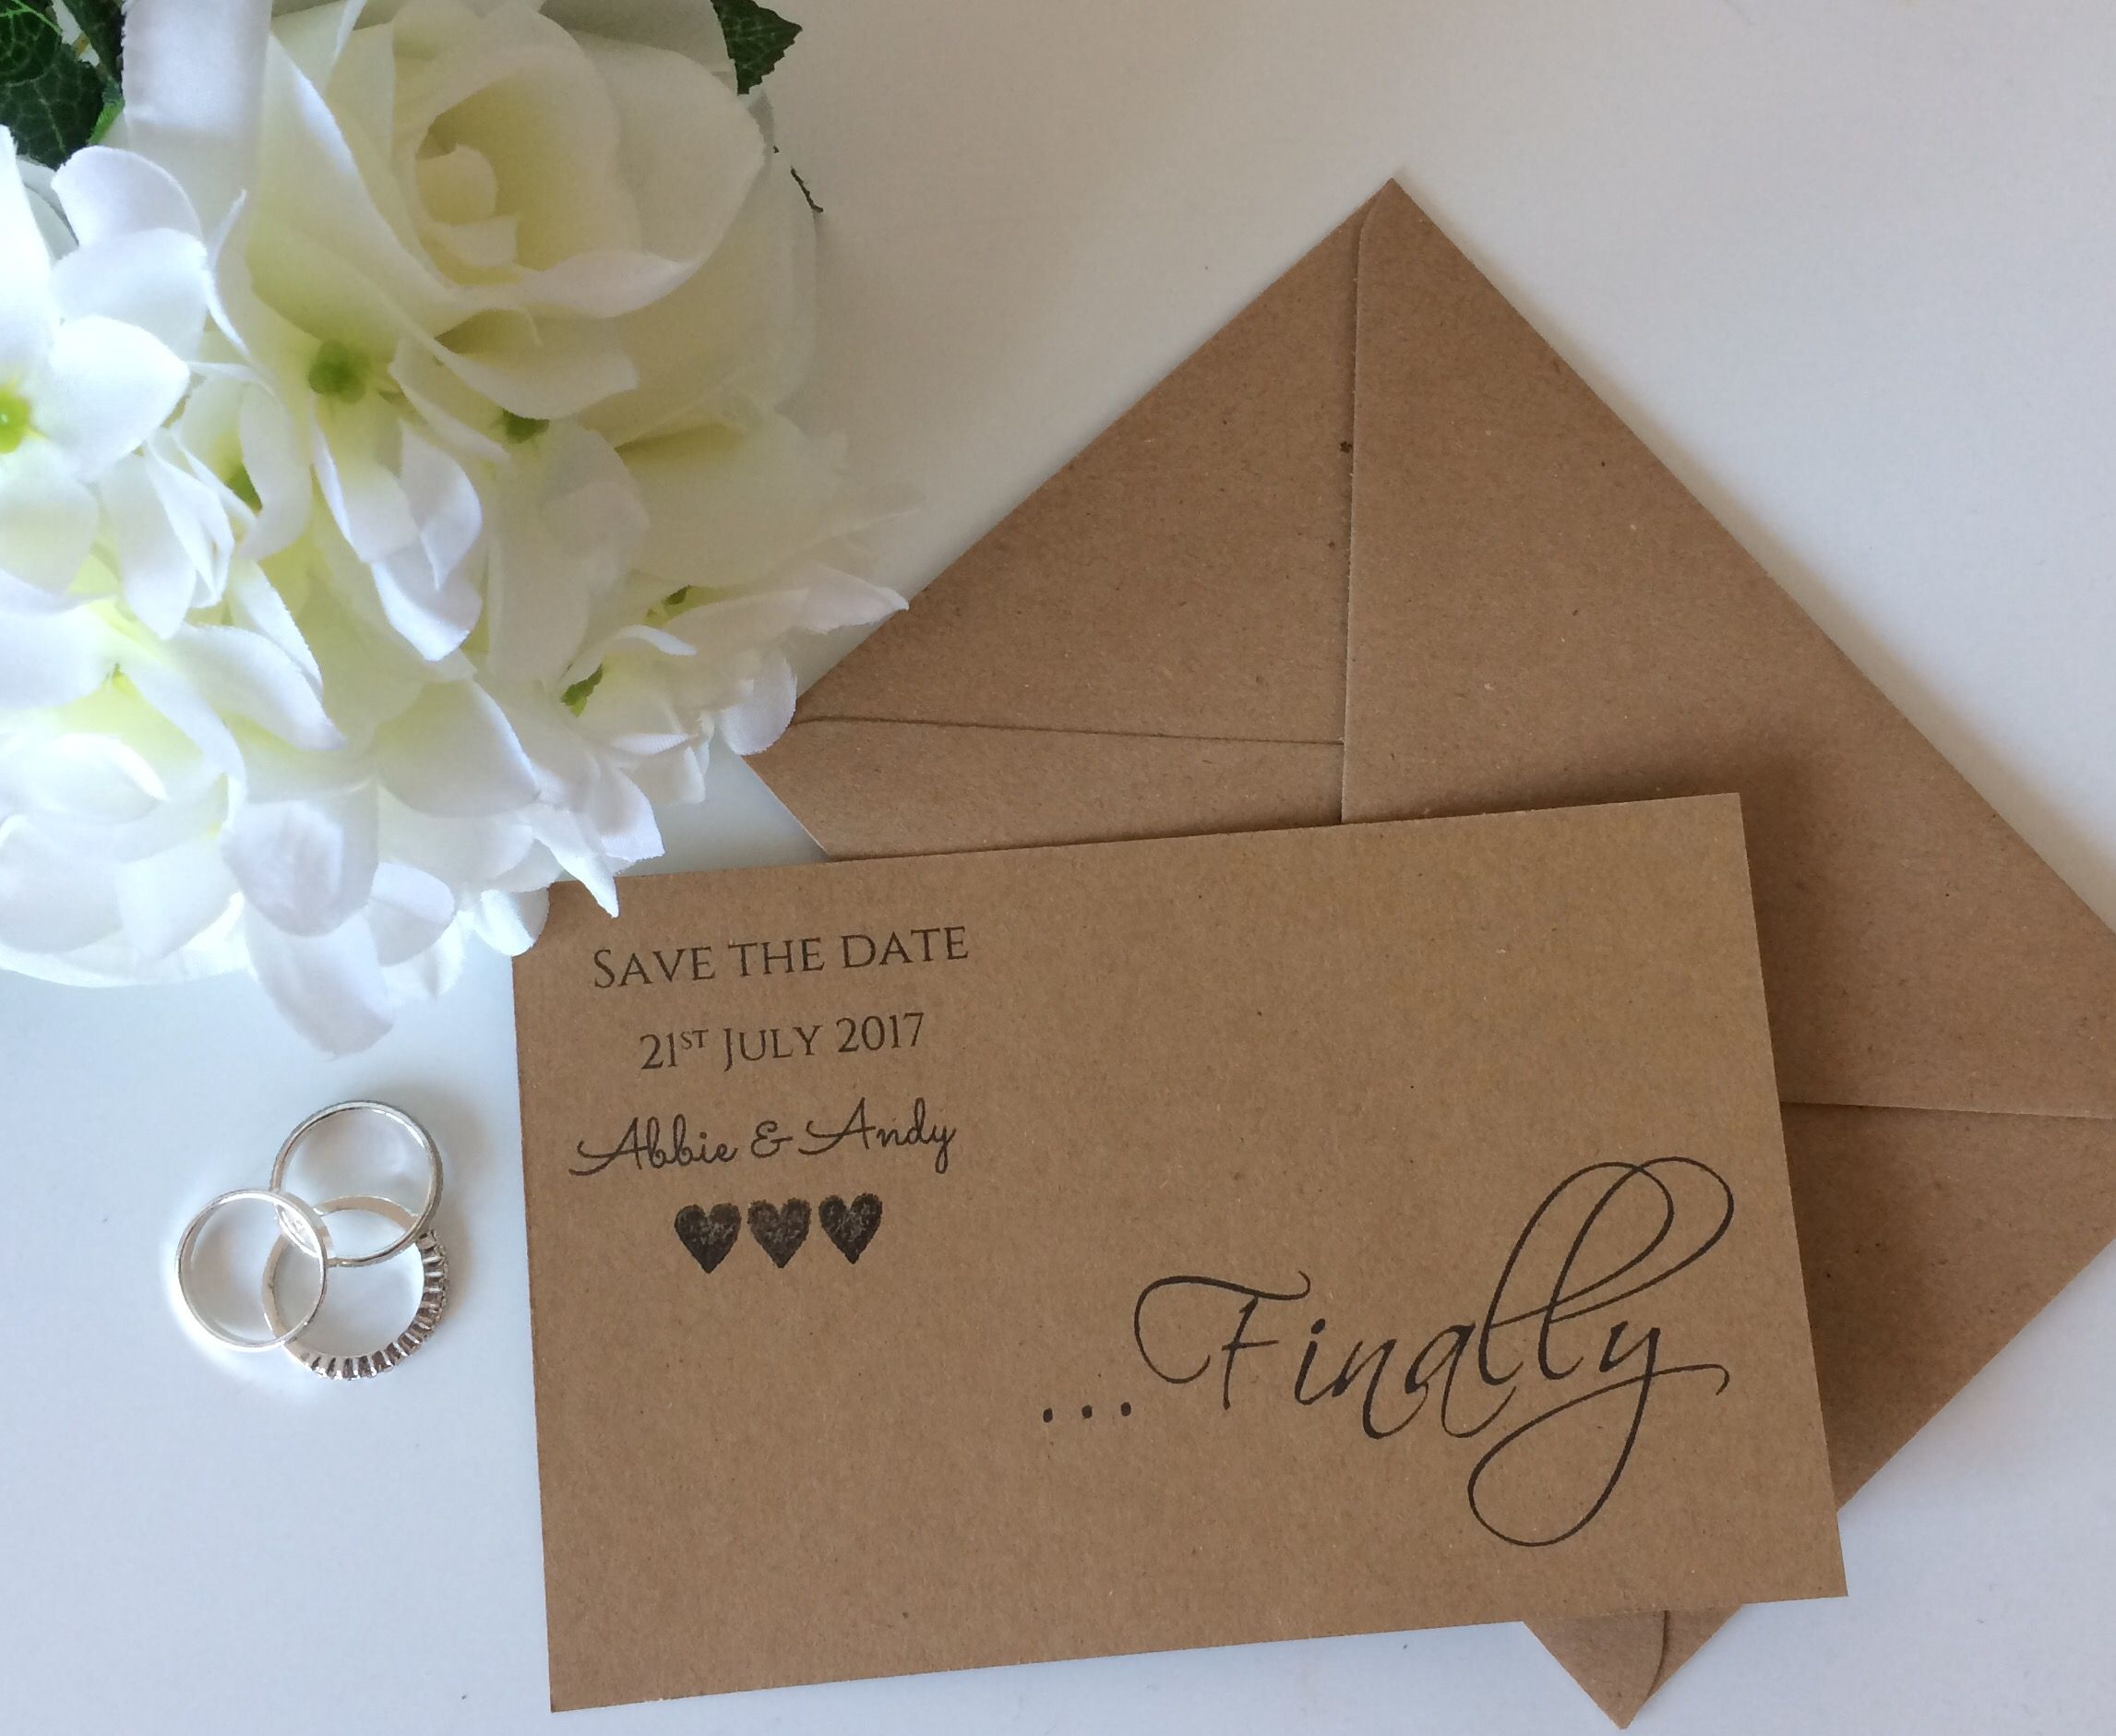 figs gift card code